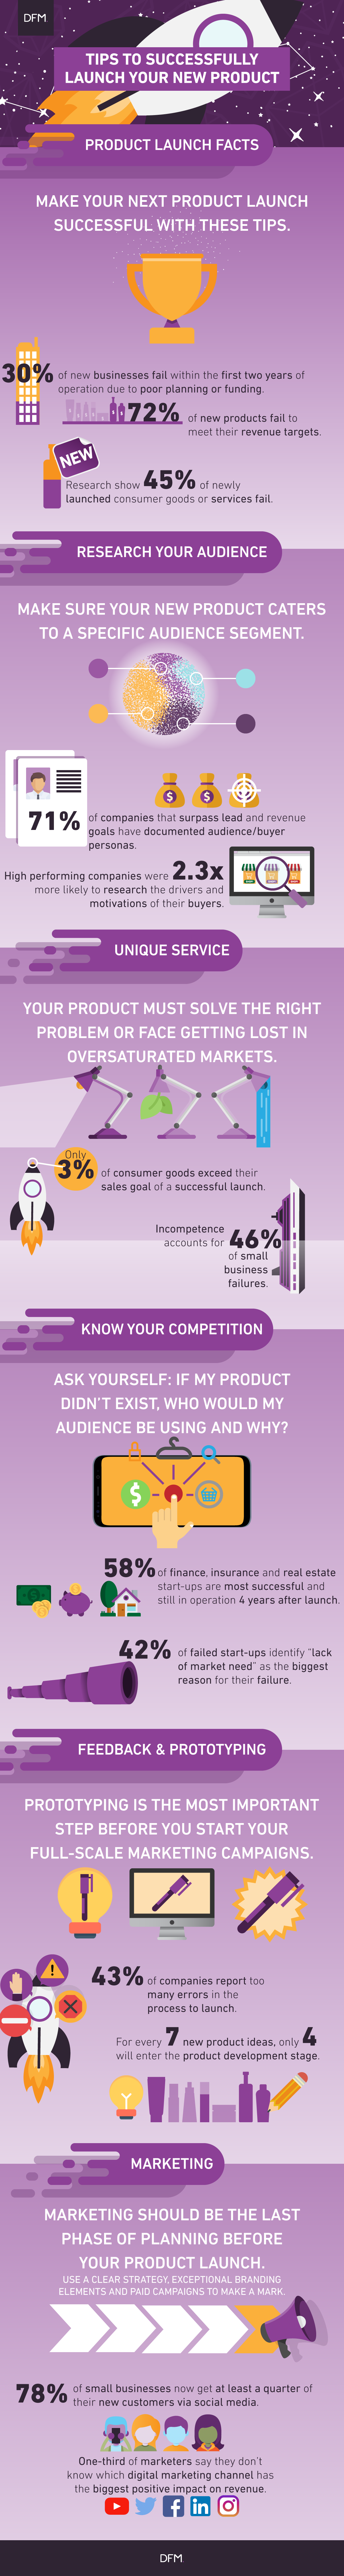 DFM Infographic_How to Successfully Launch a Product